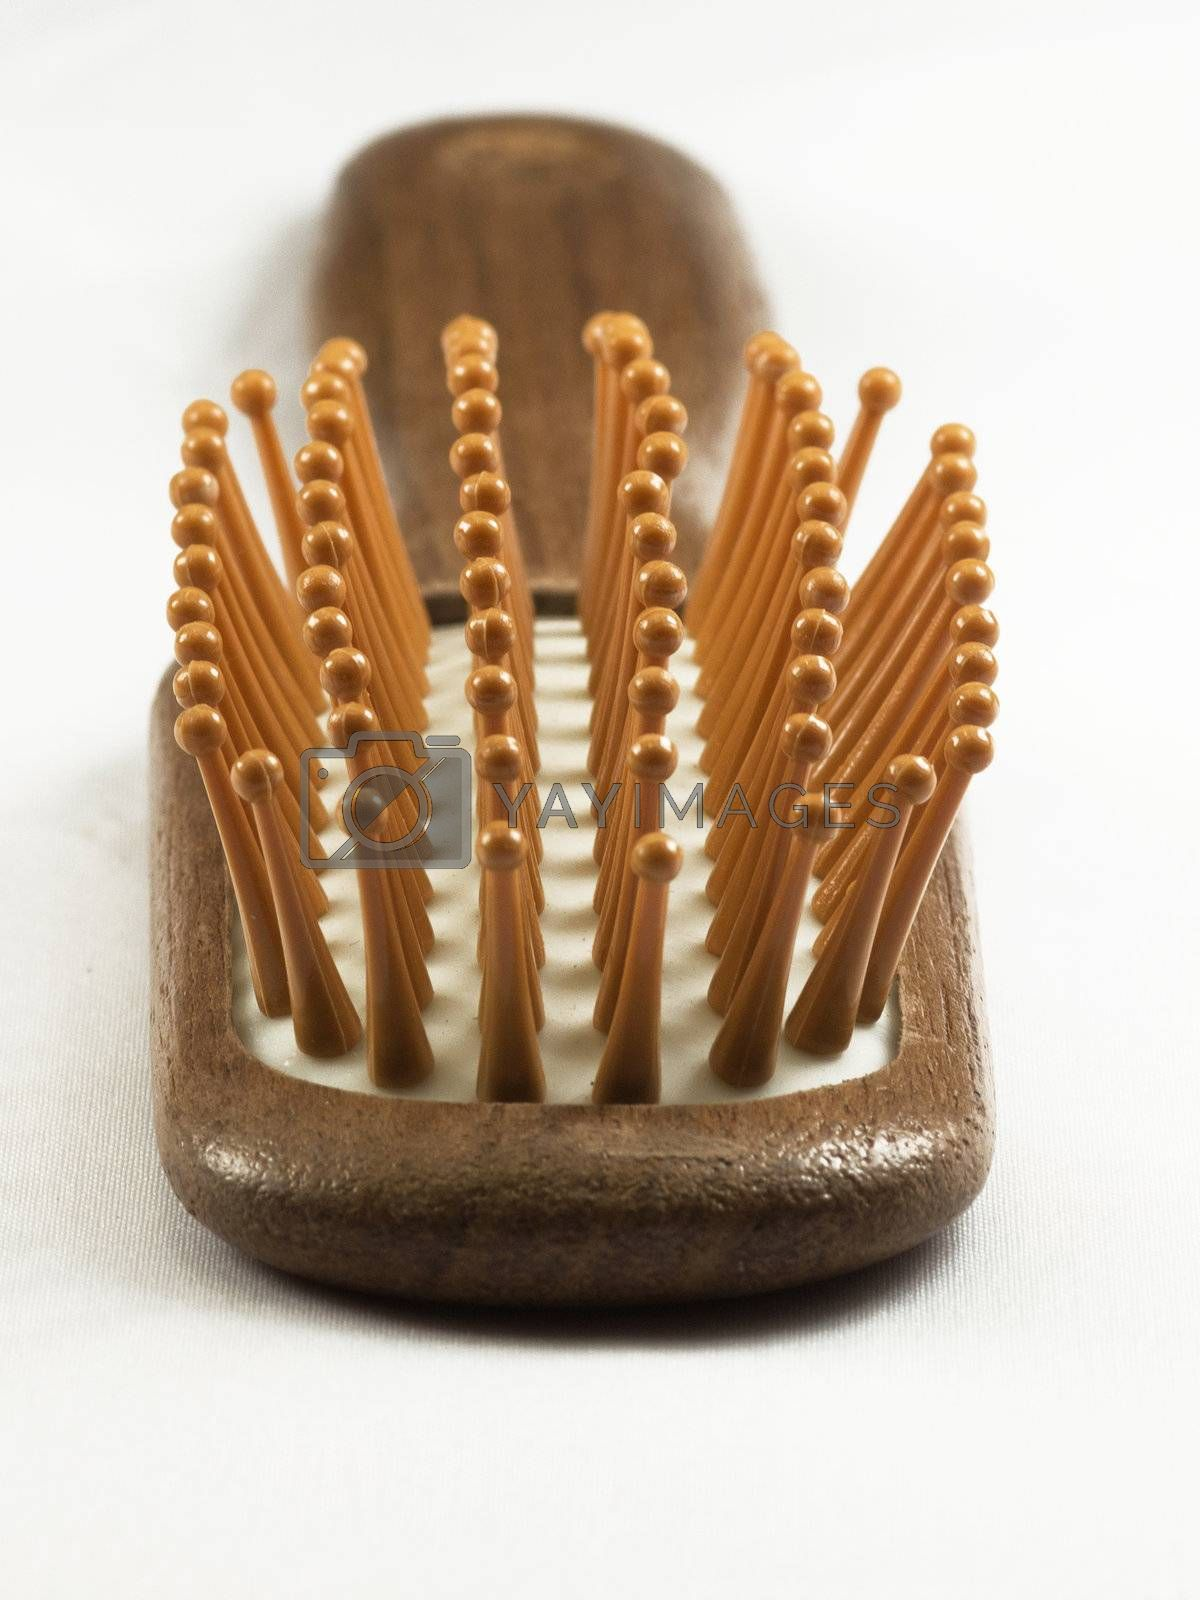 Wooden hair brush isolated on white background.